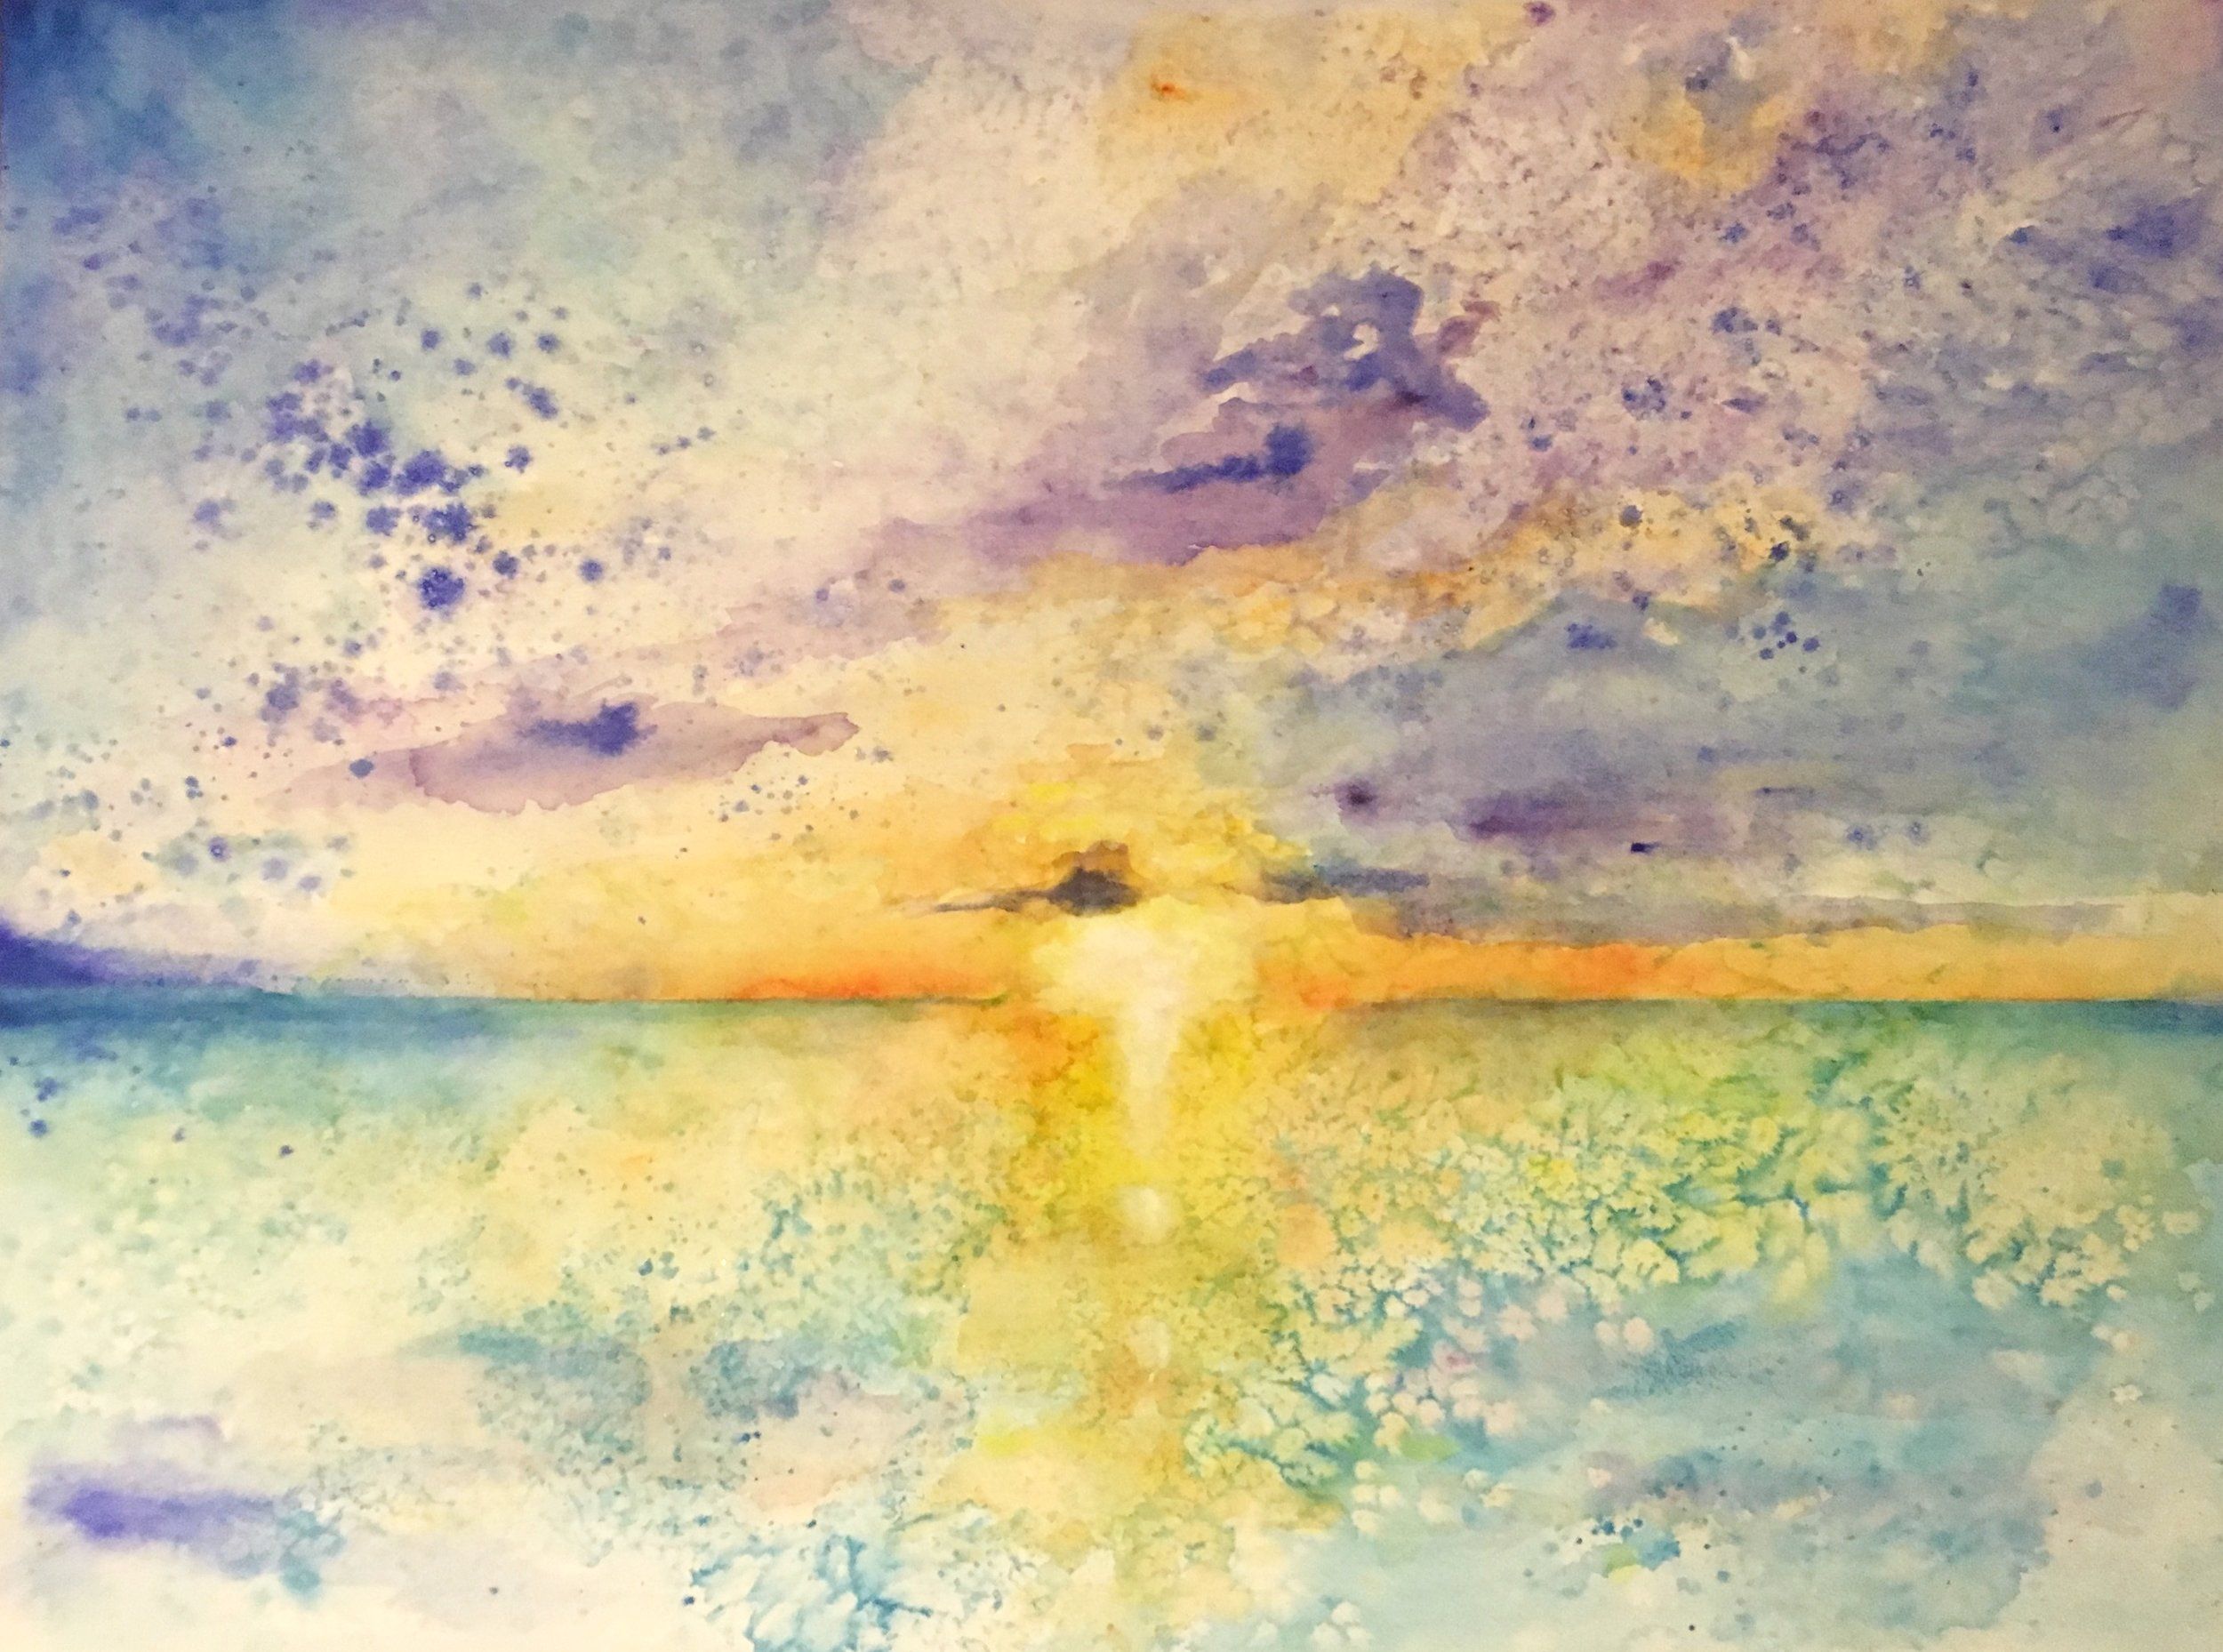 Belizean Sunset - a salt-scrubbed watercolor